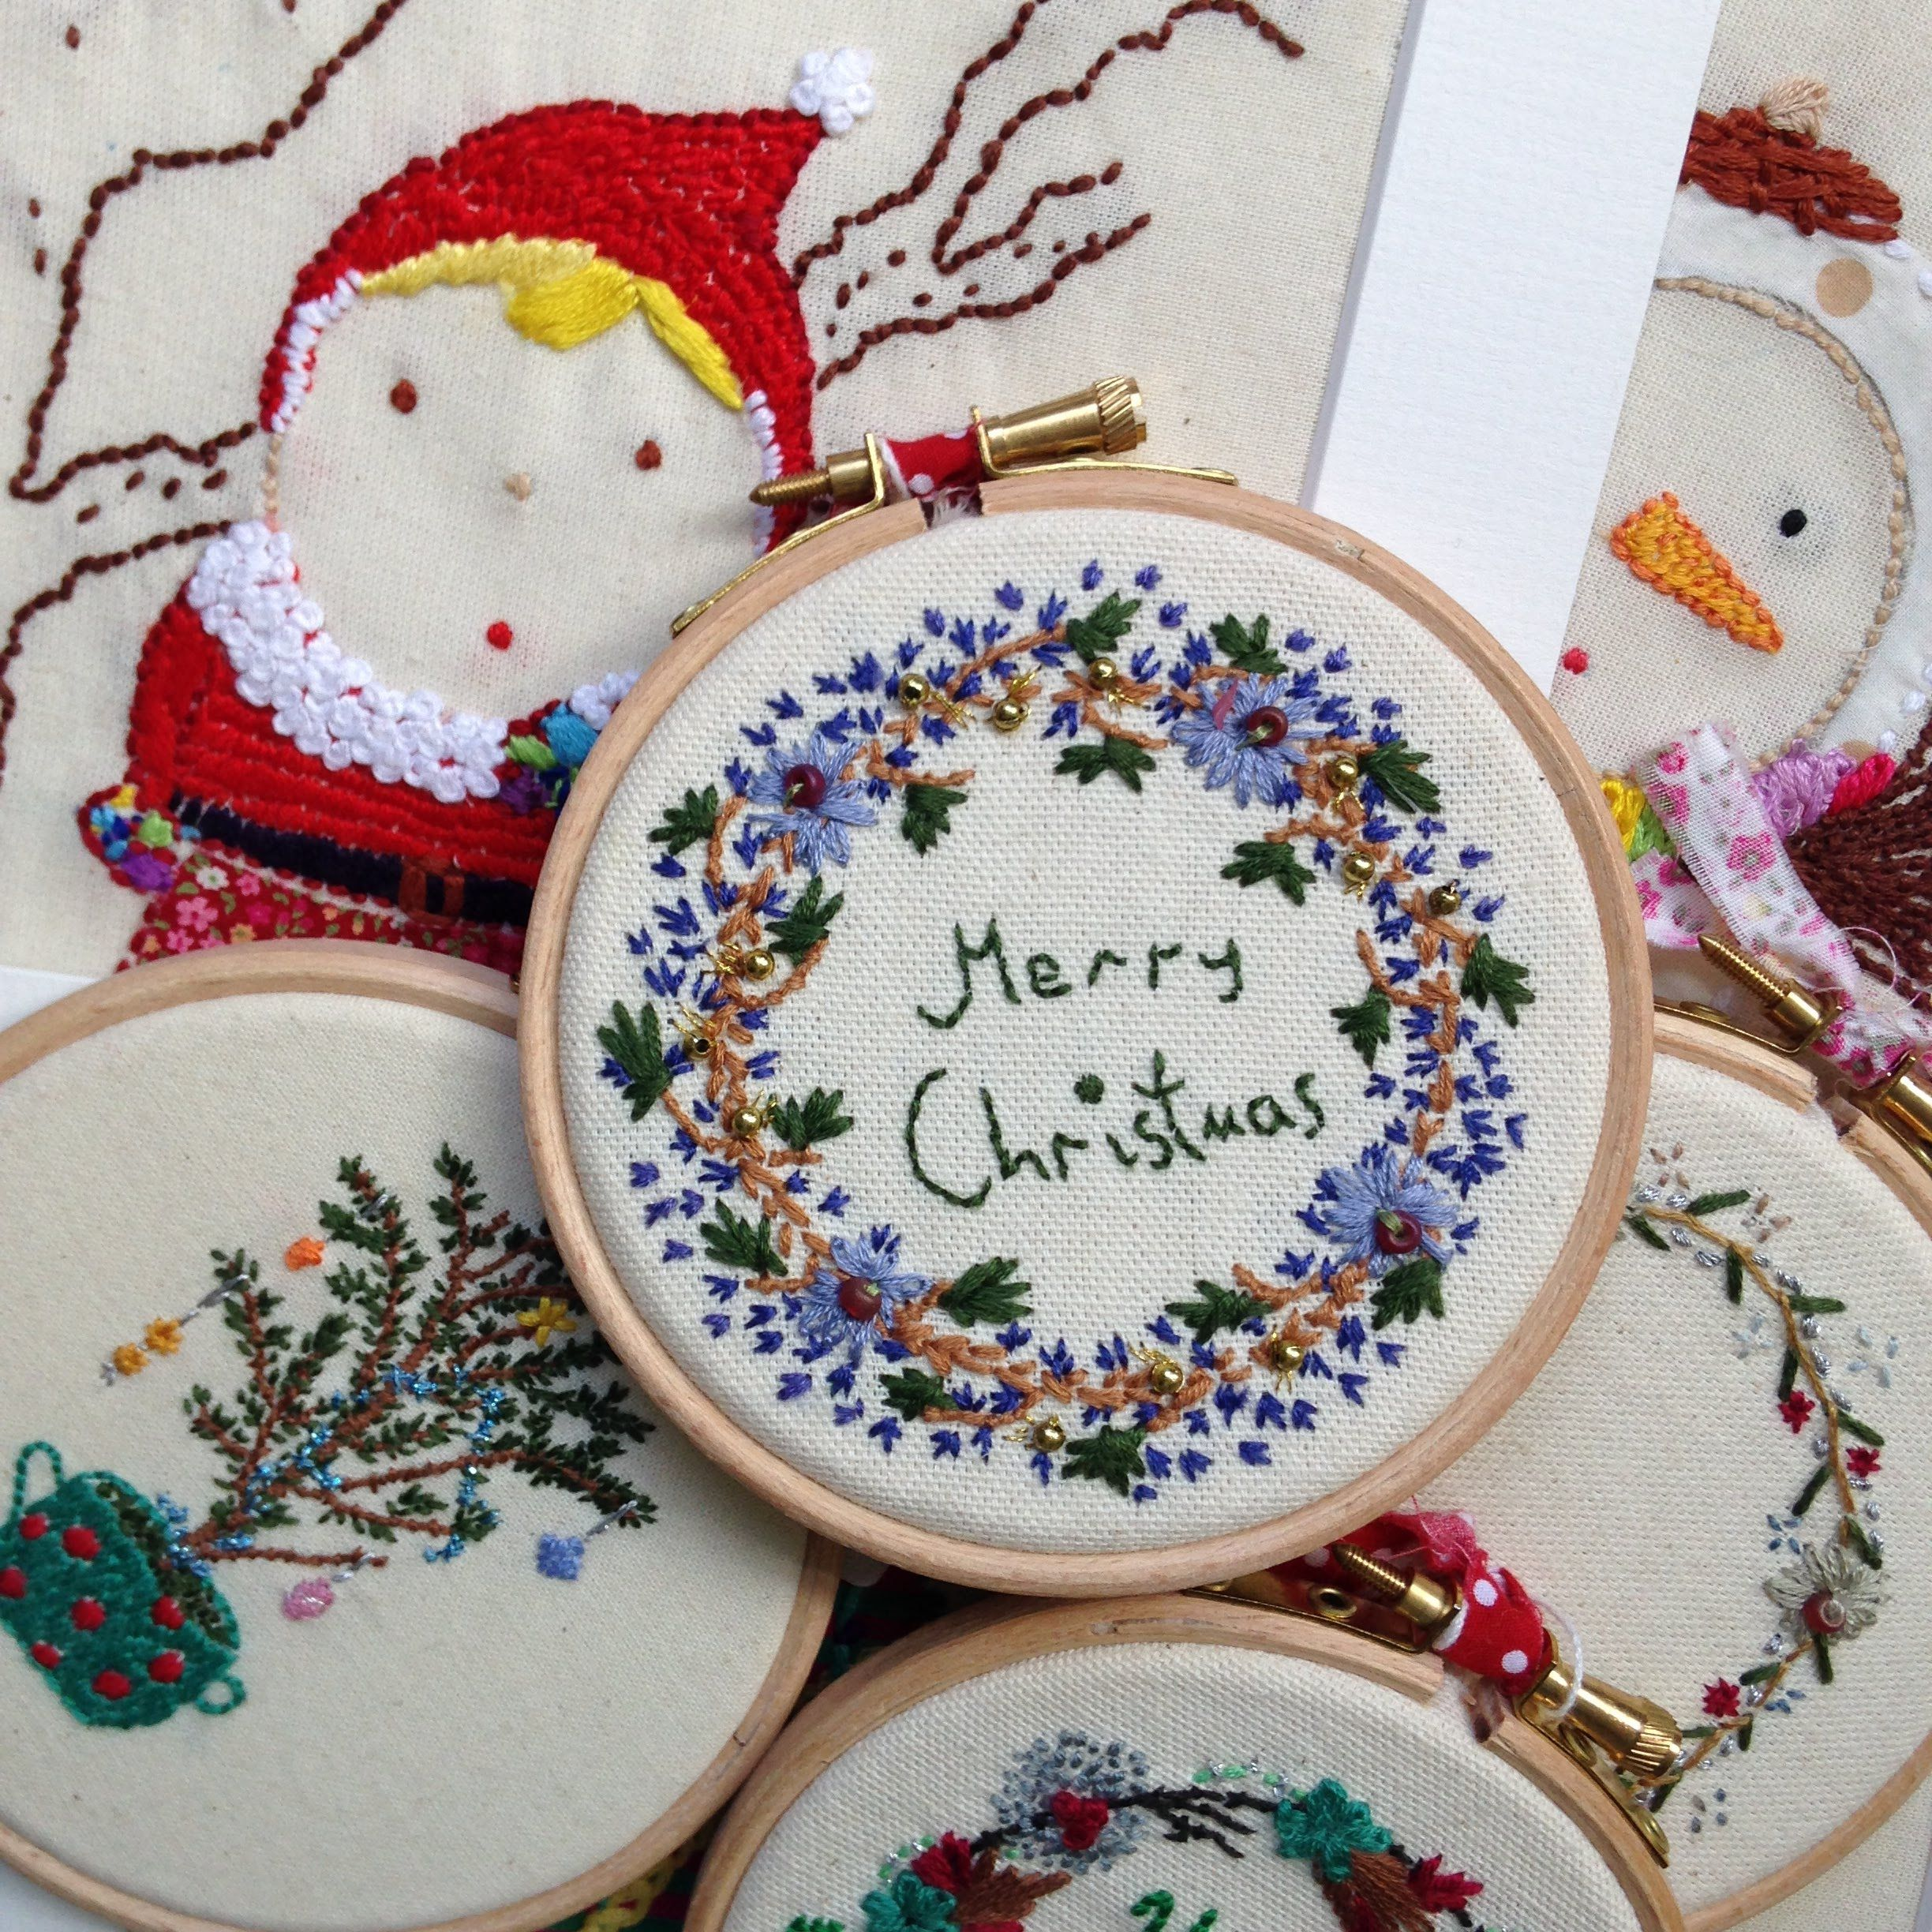 How to make a Christmas wreath embroidery hoop in just a few simple steps